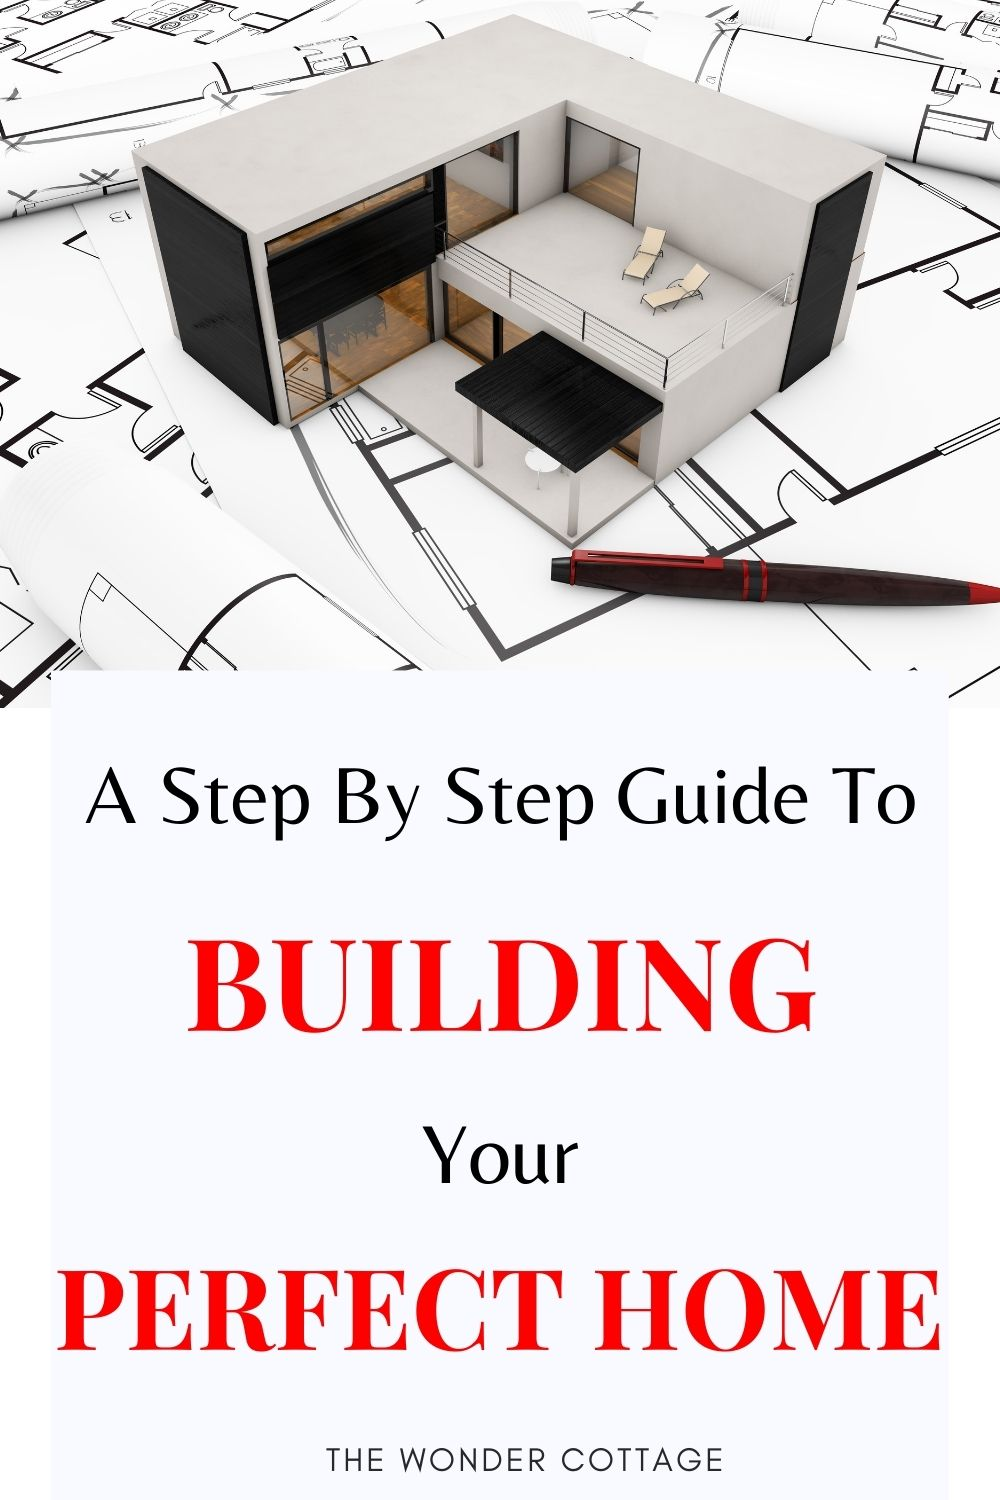 step by step guide to building your perfect home